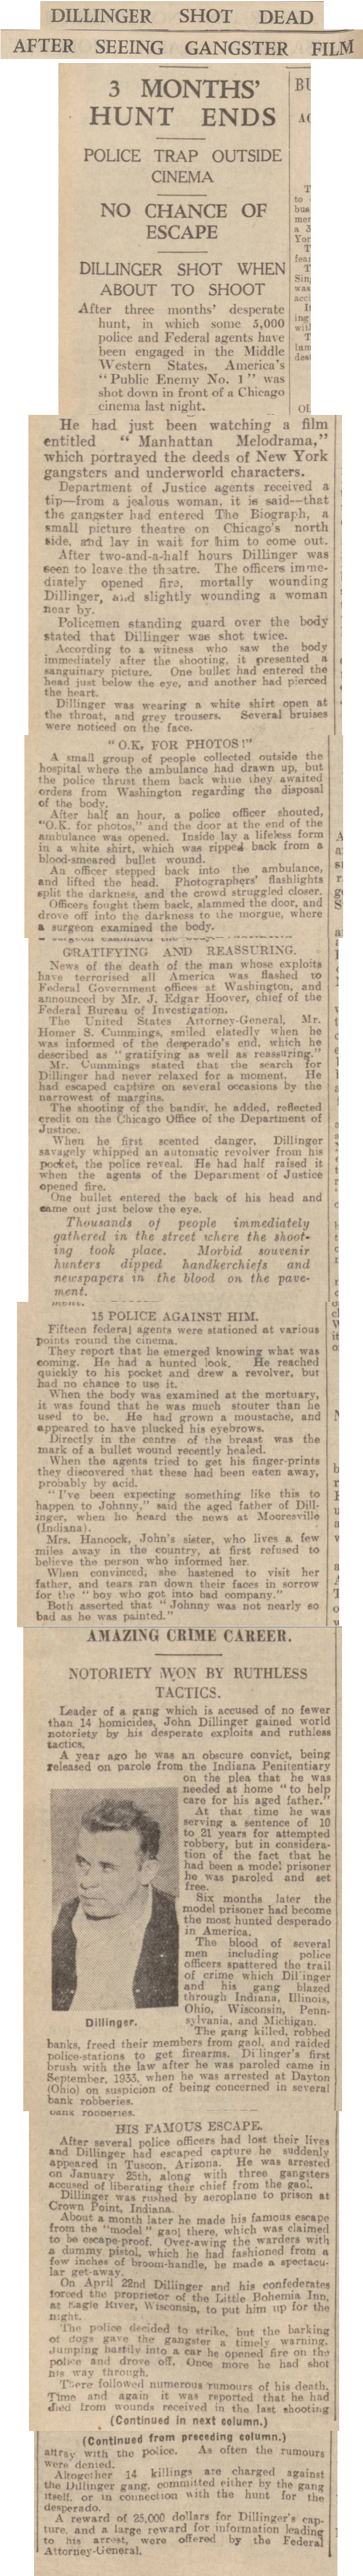 historical newspaper report about The Shooting of John Dillinger